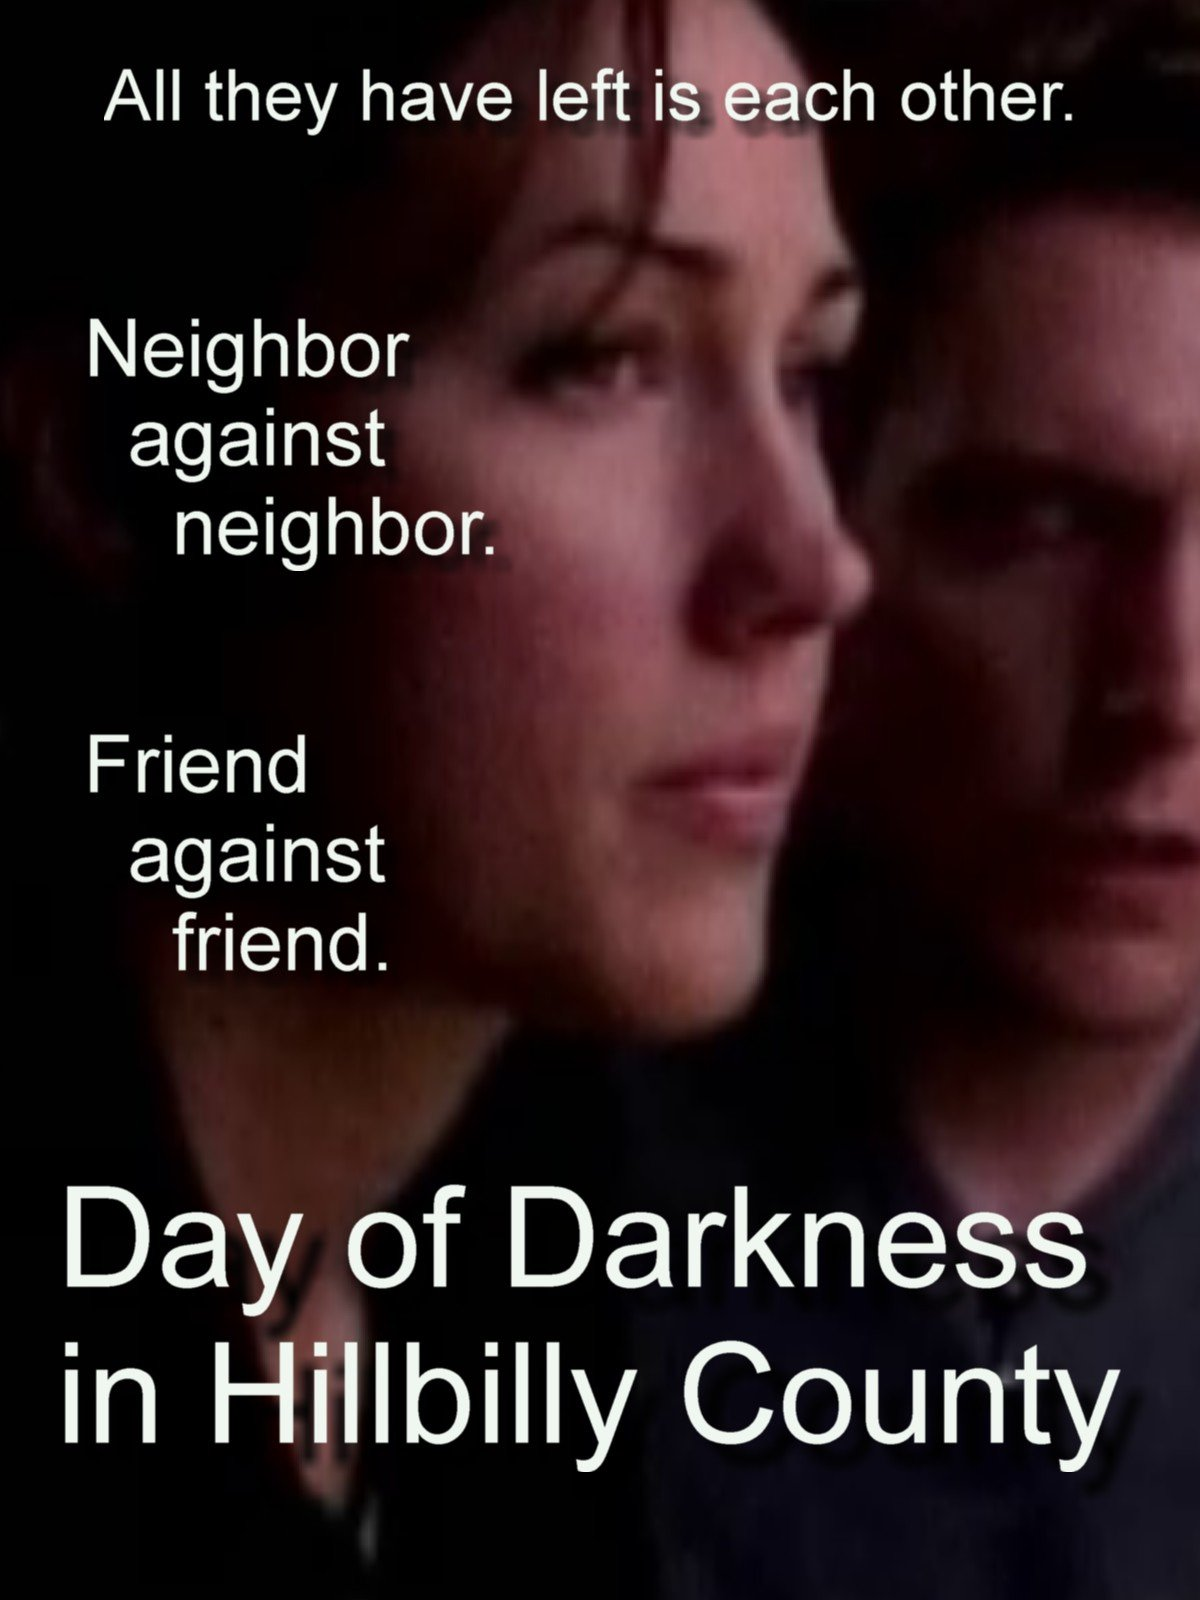 Day of Darkness in Hillbilly County